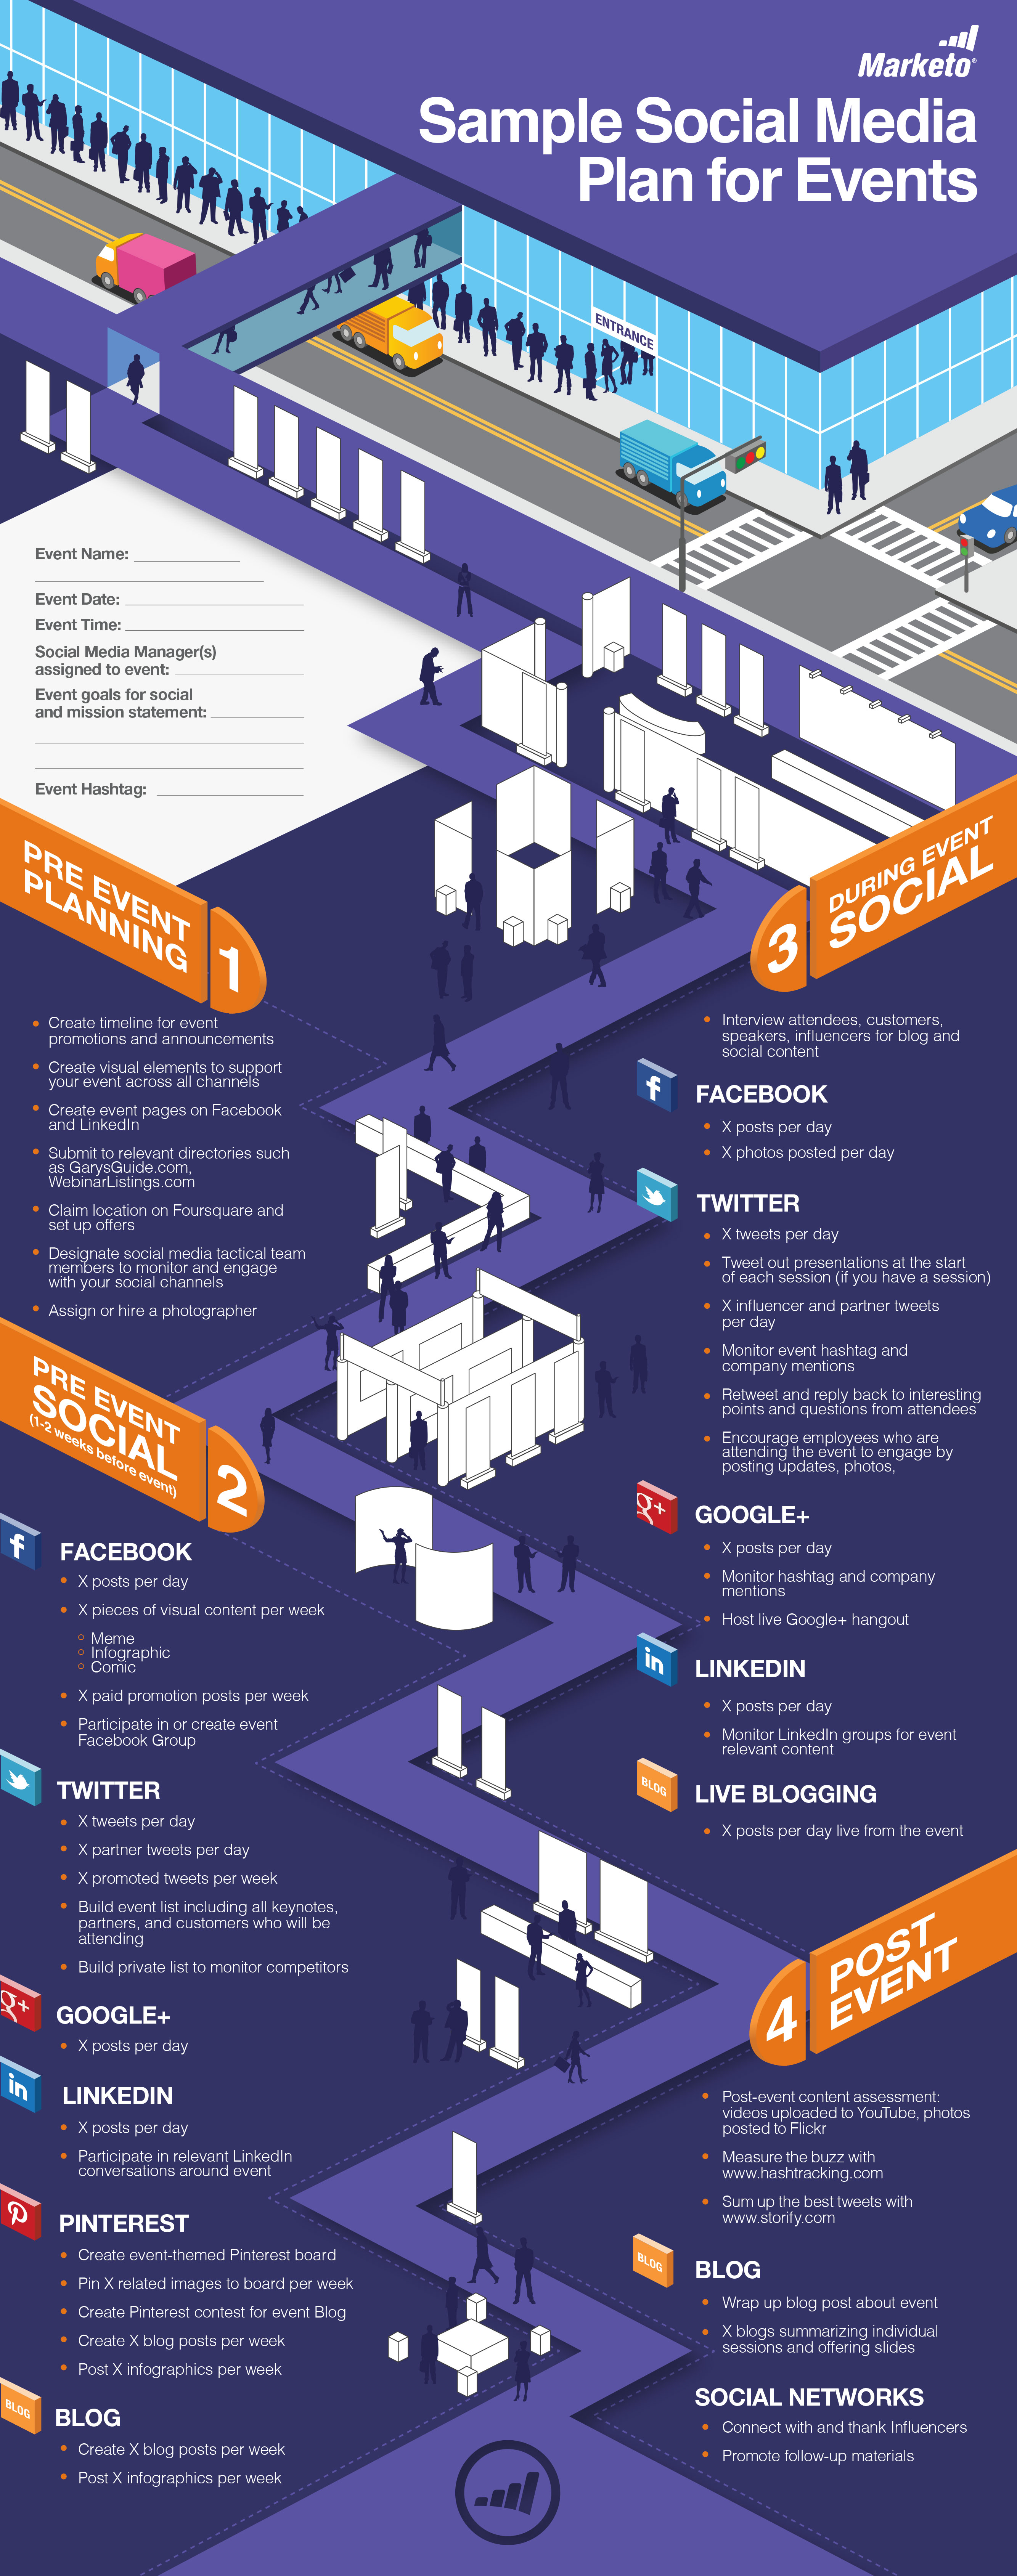 sample sm plan for events Events & Social Media Marketing Checklist [INFOGRAPHIC]